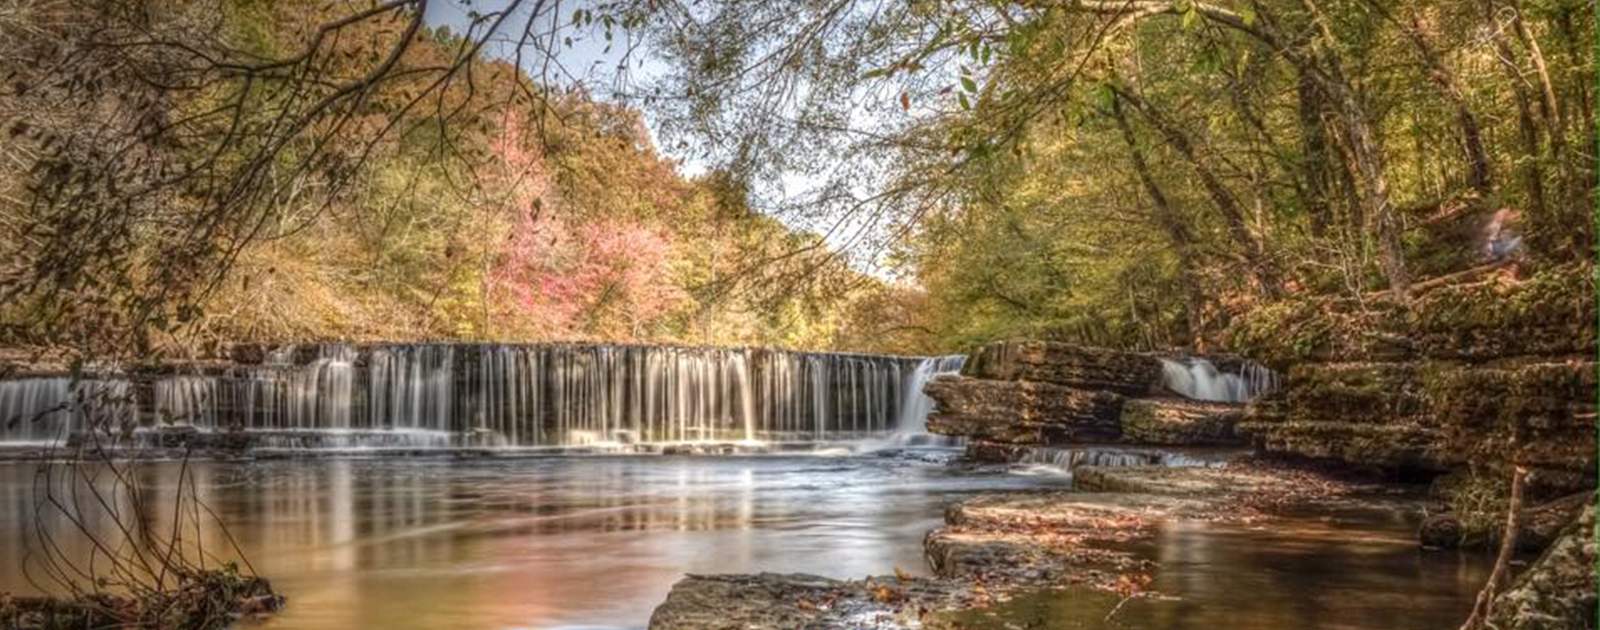 Falling Water House Wallpaper Waterfalls Tennessee State Parks